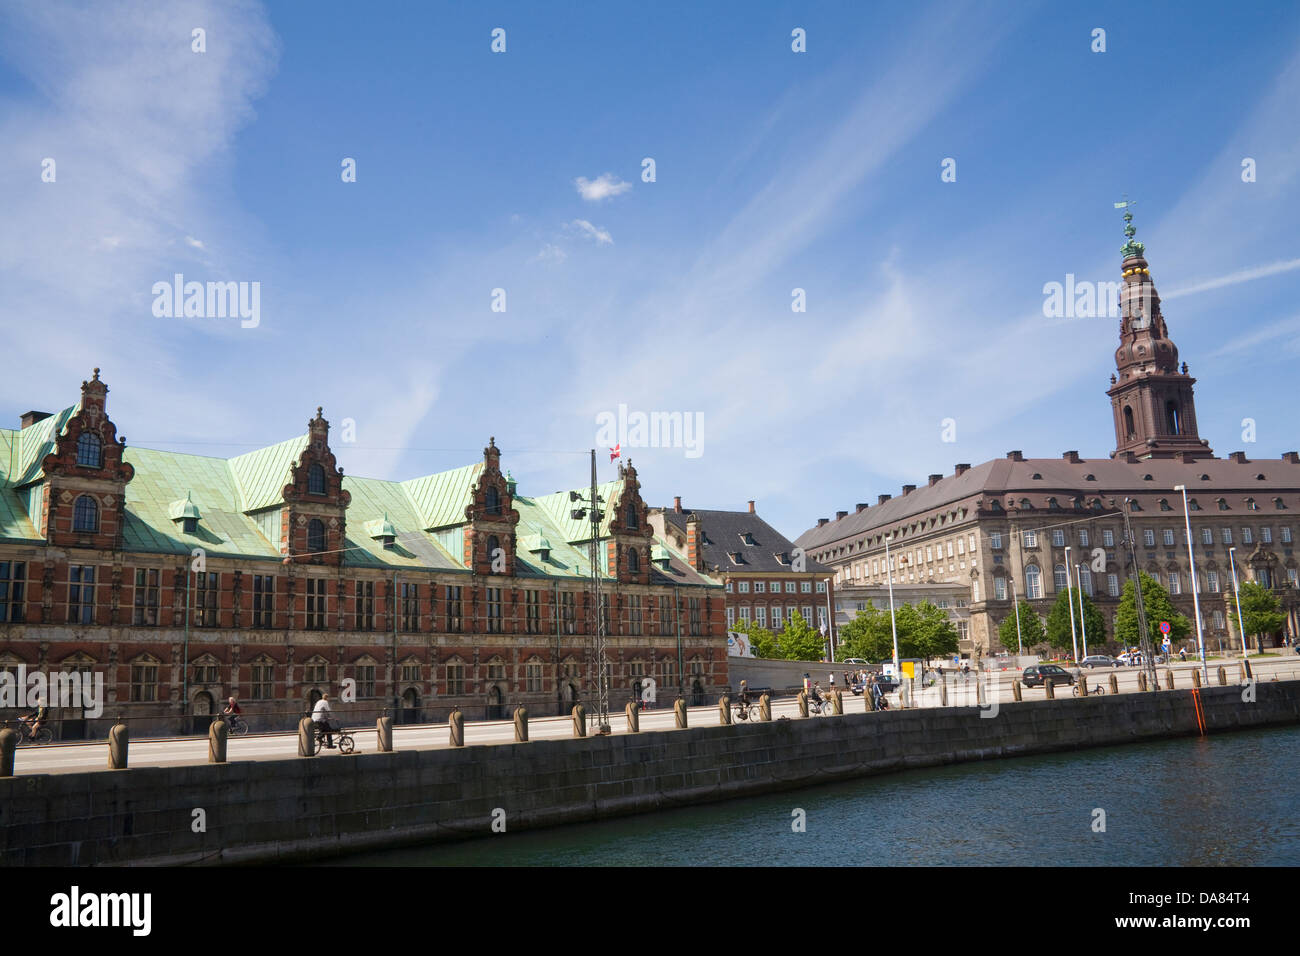 Copenhagen Denmark EU View across canal to Old Stock Exchange Building Borsen and Christiansborg Palace on islet - Stock Image